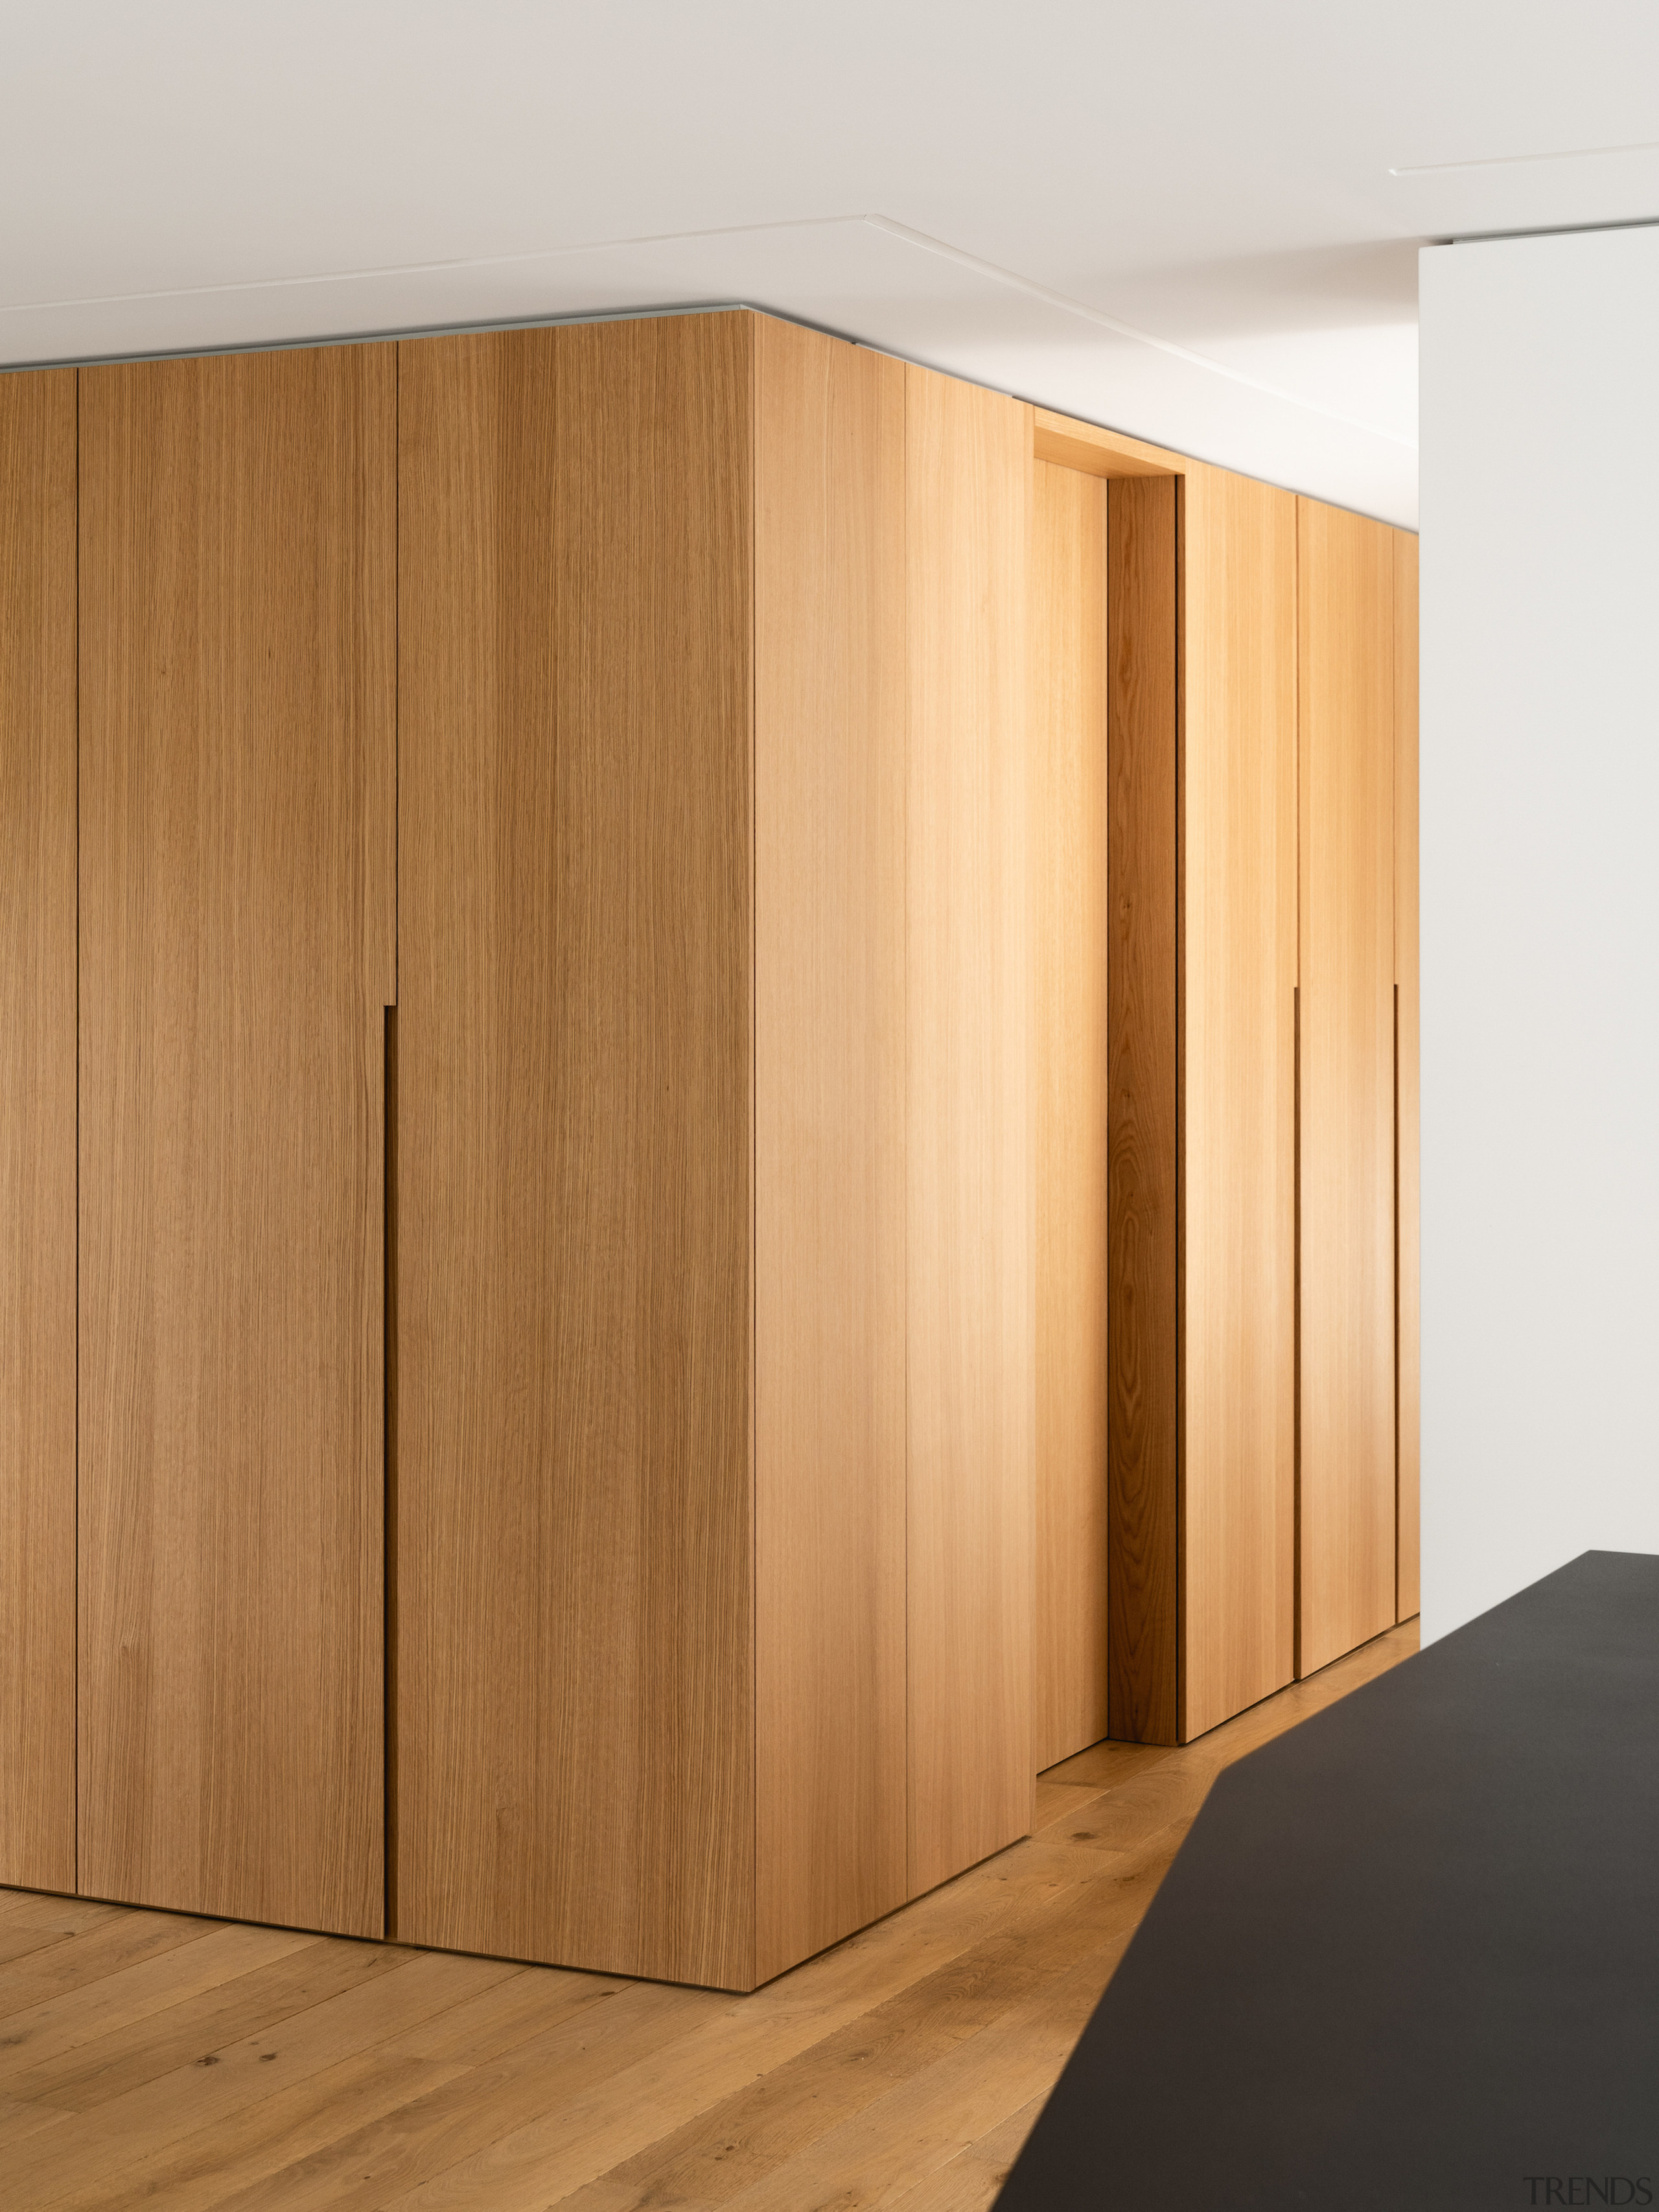 Clean-lined, custom wood joinery in this renovation serves